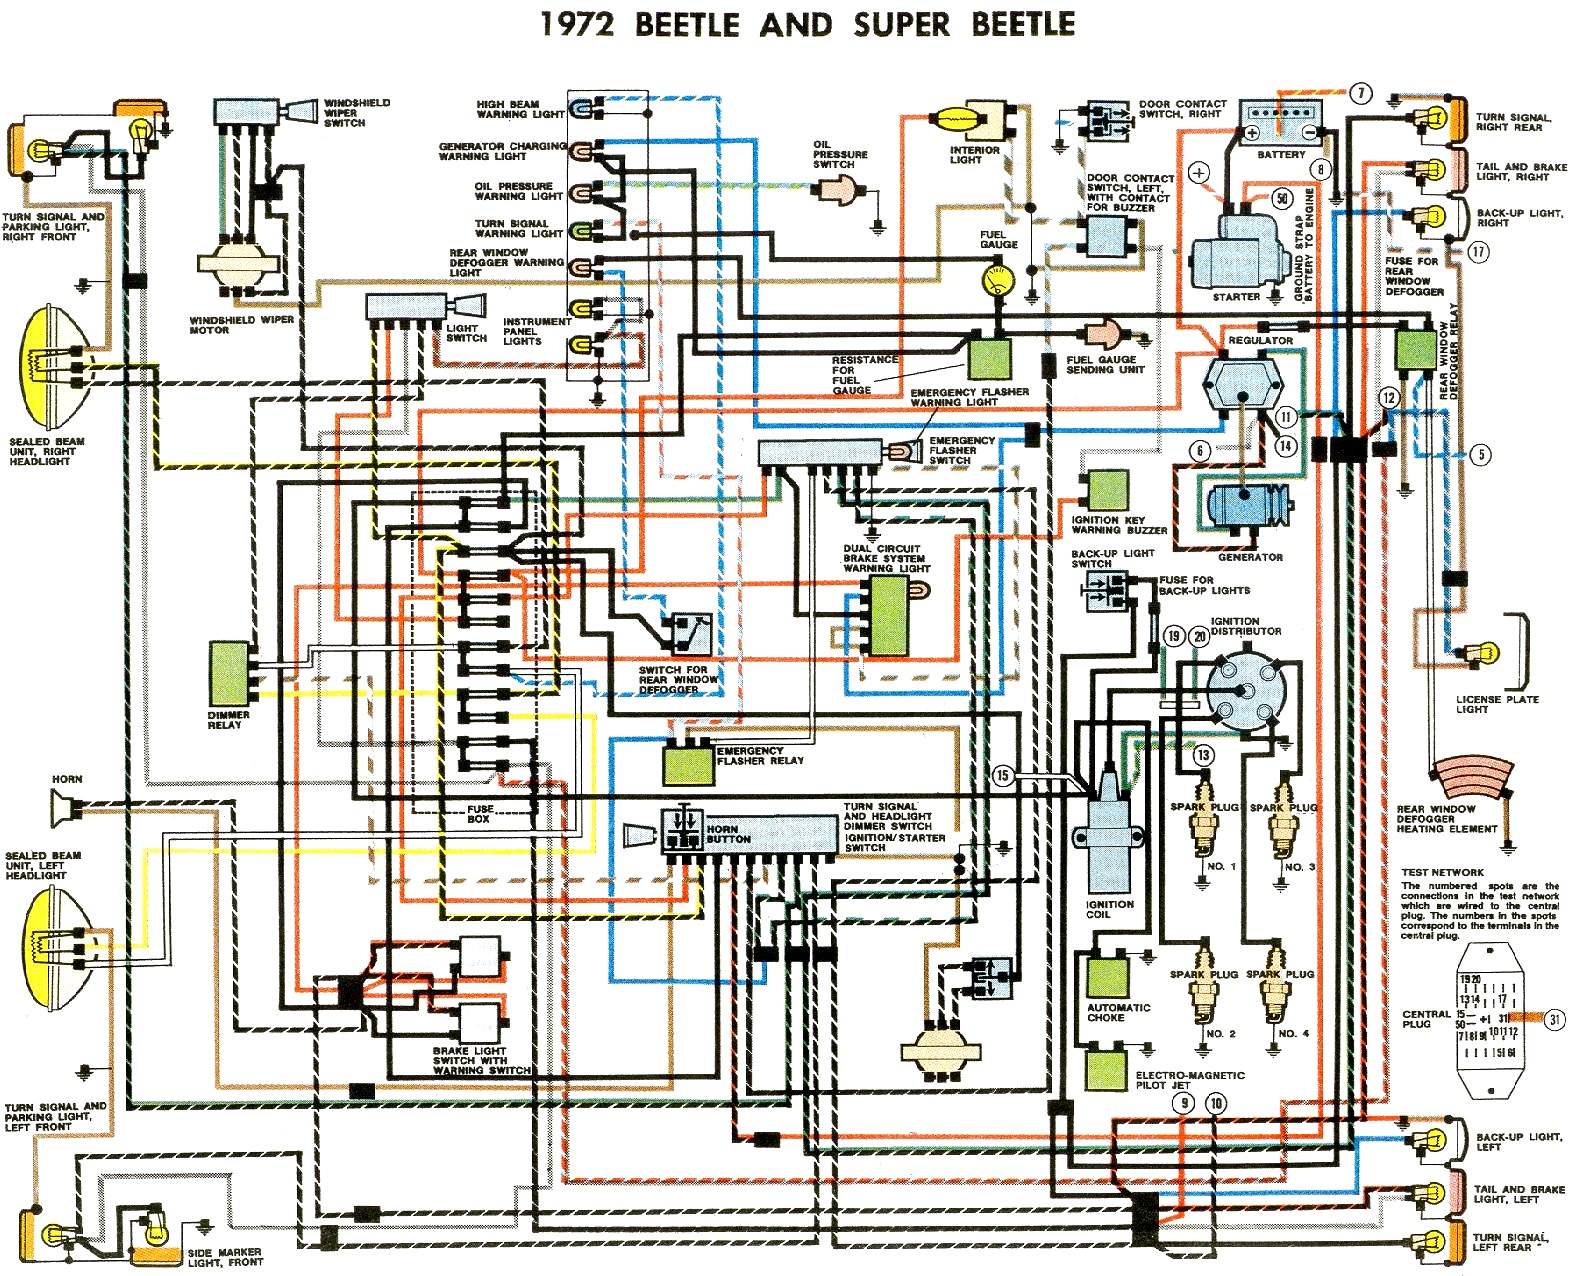 bug_72 1972 beetle wiring diagram thegoldenbug com 1971 vw beetle wiring diagram at nearapp.co